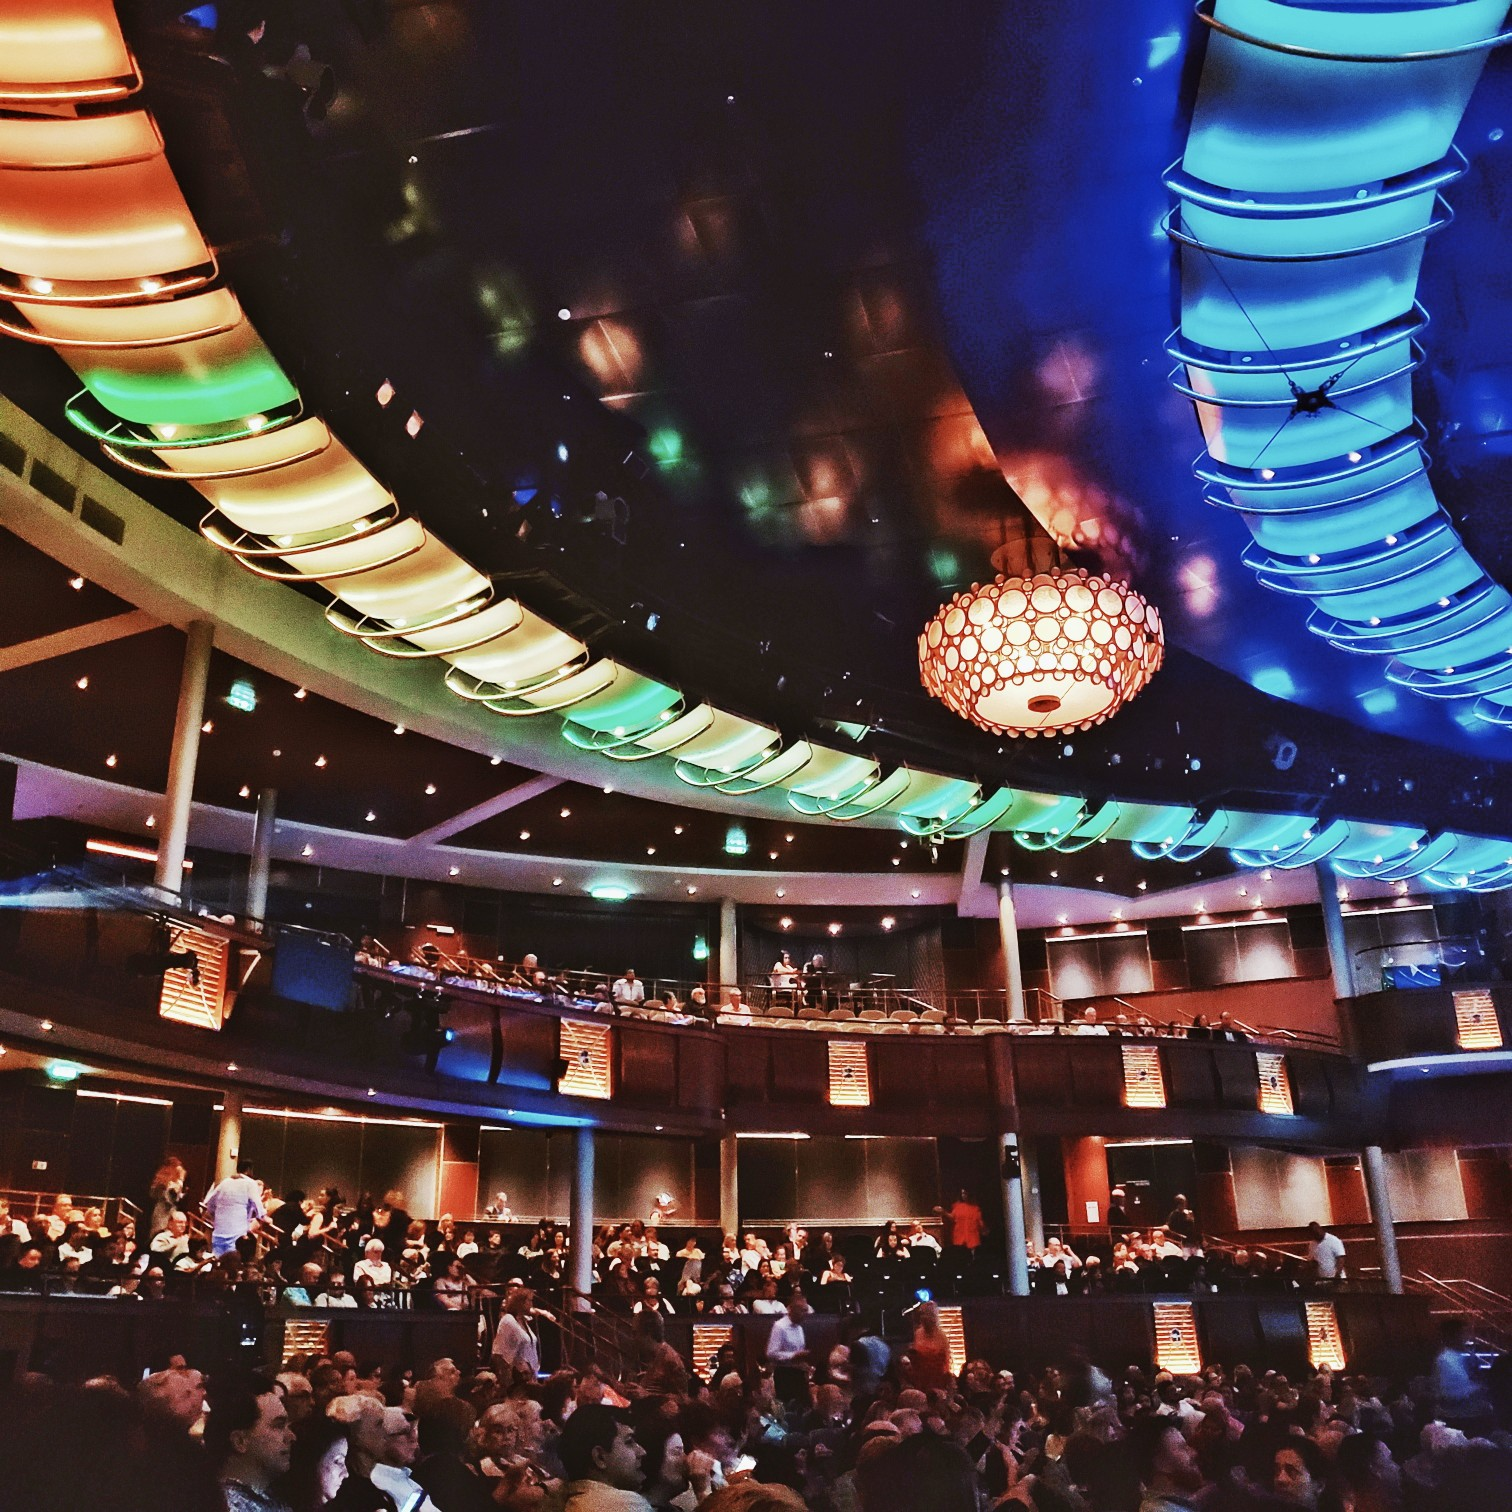 Royal Caribbean Symphony of the Seas Royal Theatre Standing Ovation